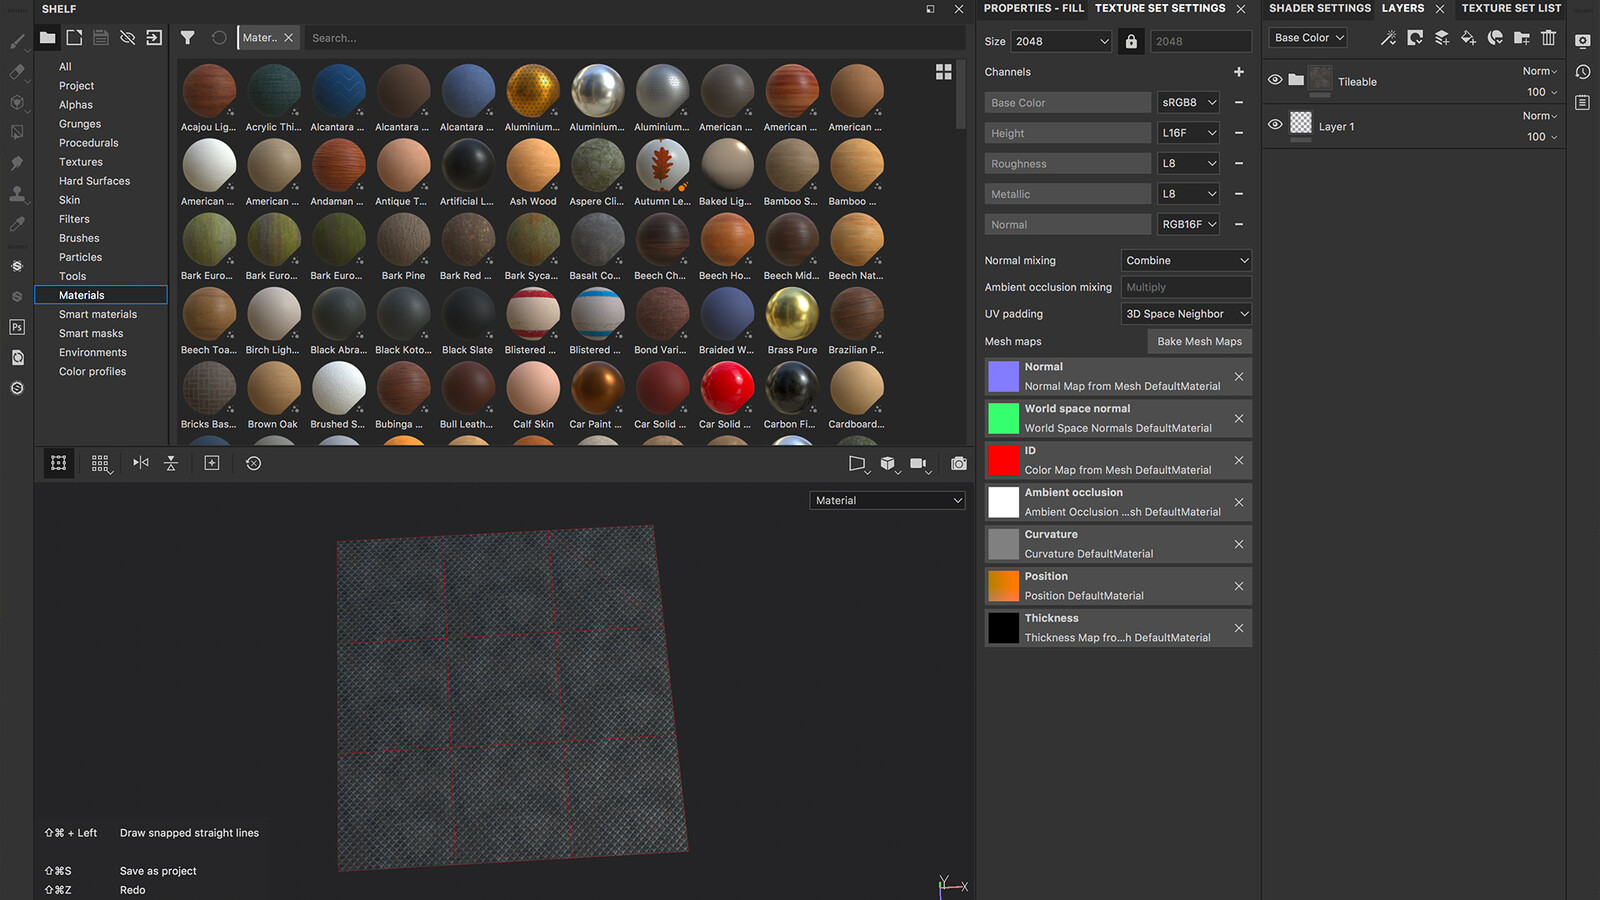 Not a typical workflow but tiling texture created in Substance painter!